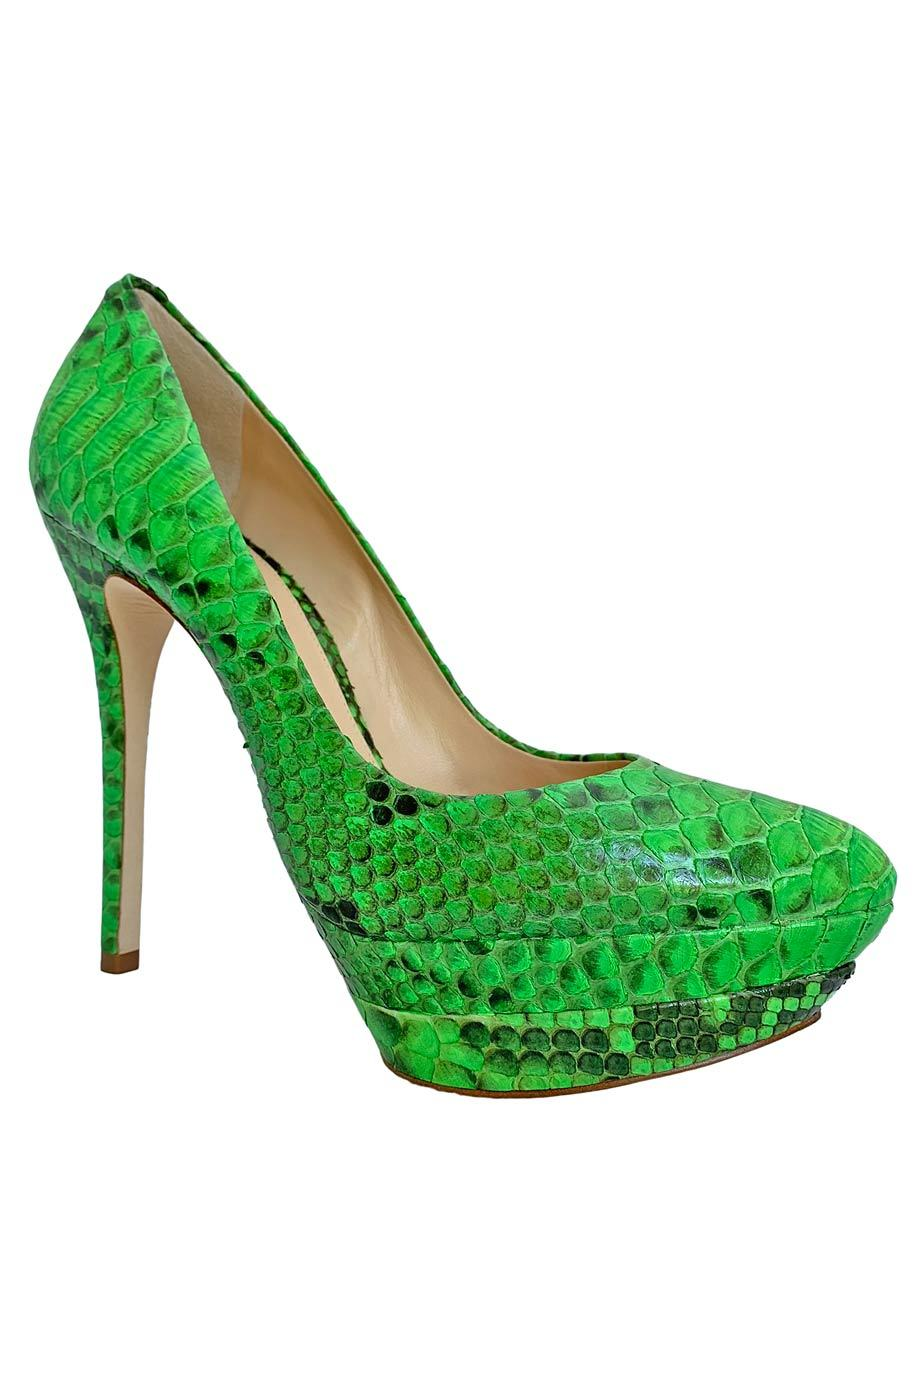 Alexandre Birman Neon Green Python High Heel Platform Shoes / Sz 9